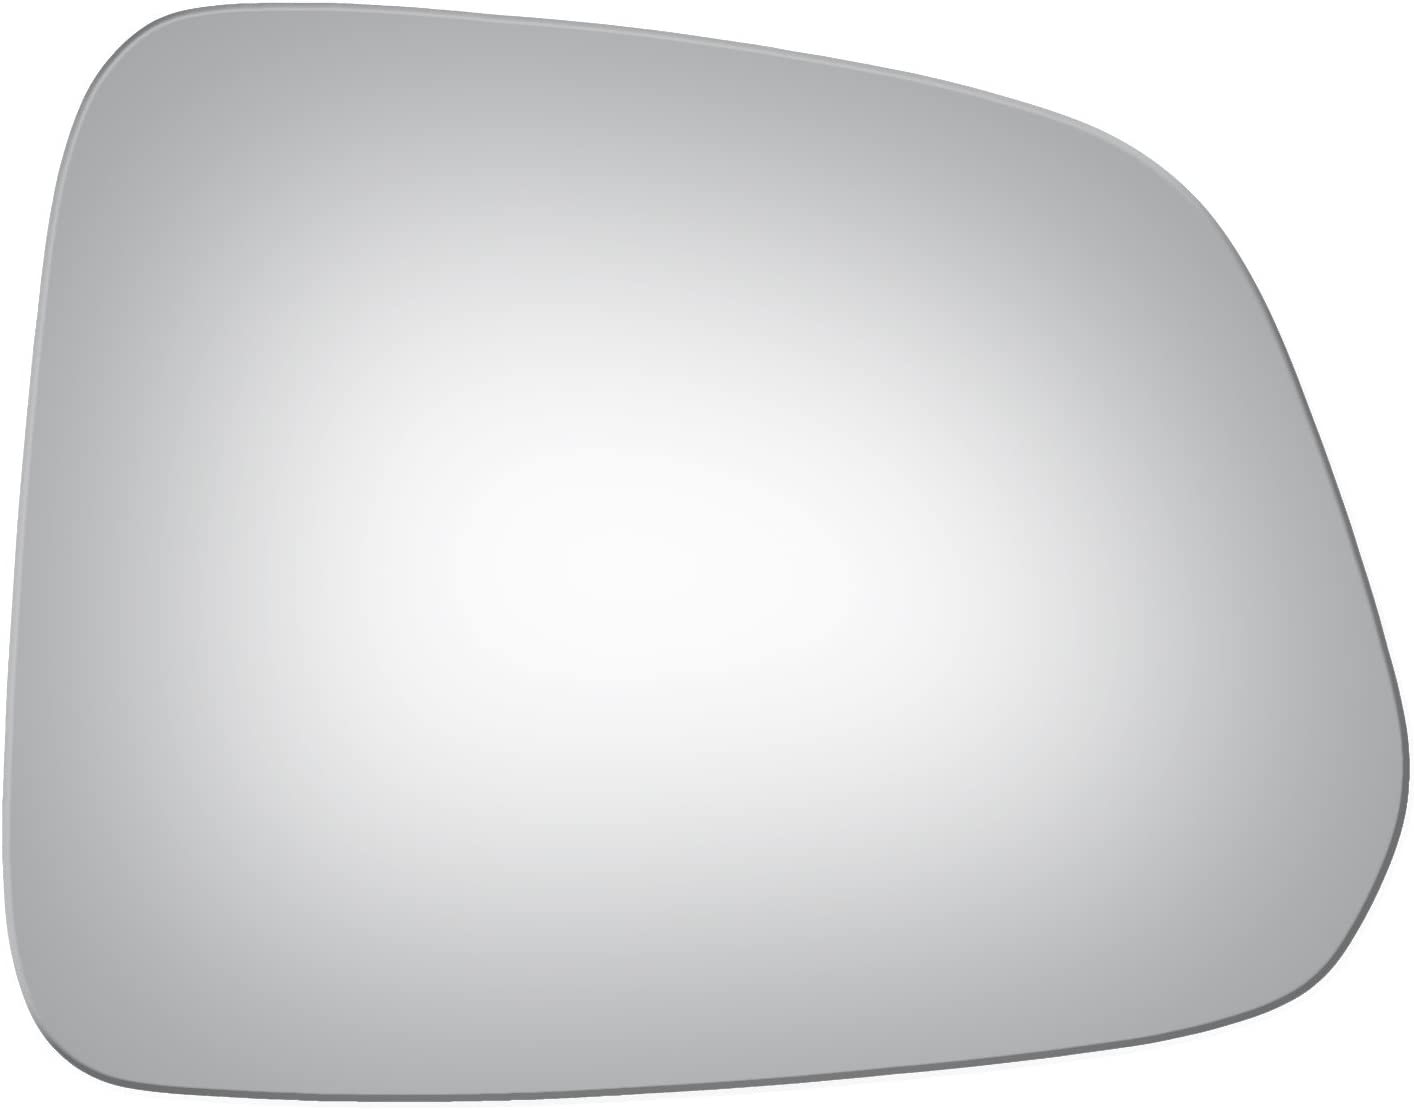 Burco 5288 Convex Passenger Side Replacement Mirror Glass for 08-10 Saturn Vue 2008, 2009, 2010